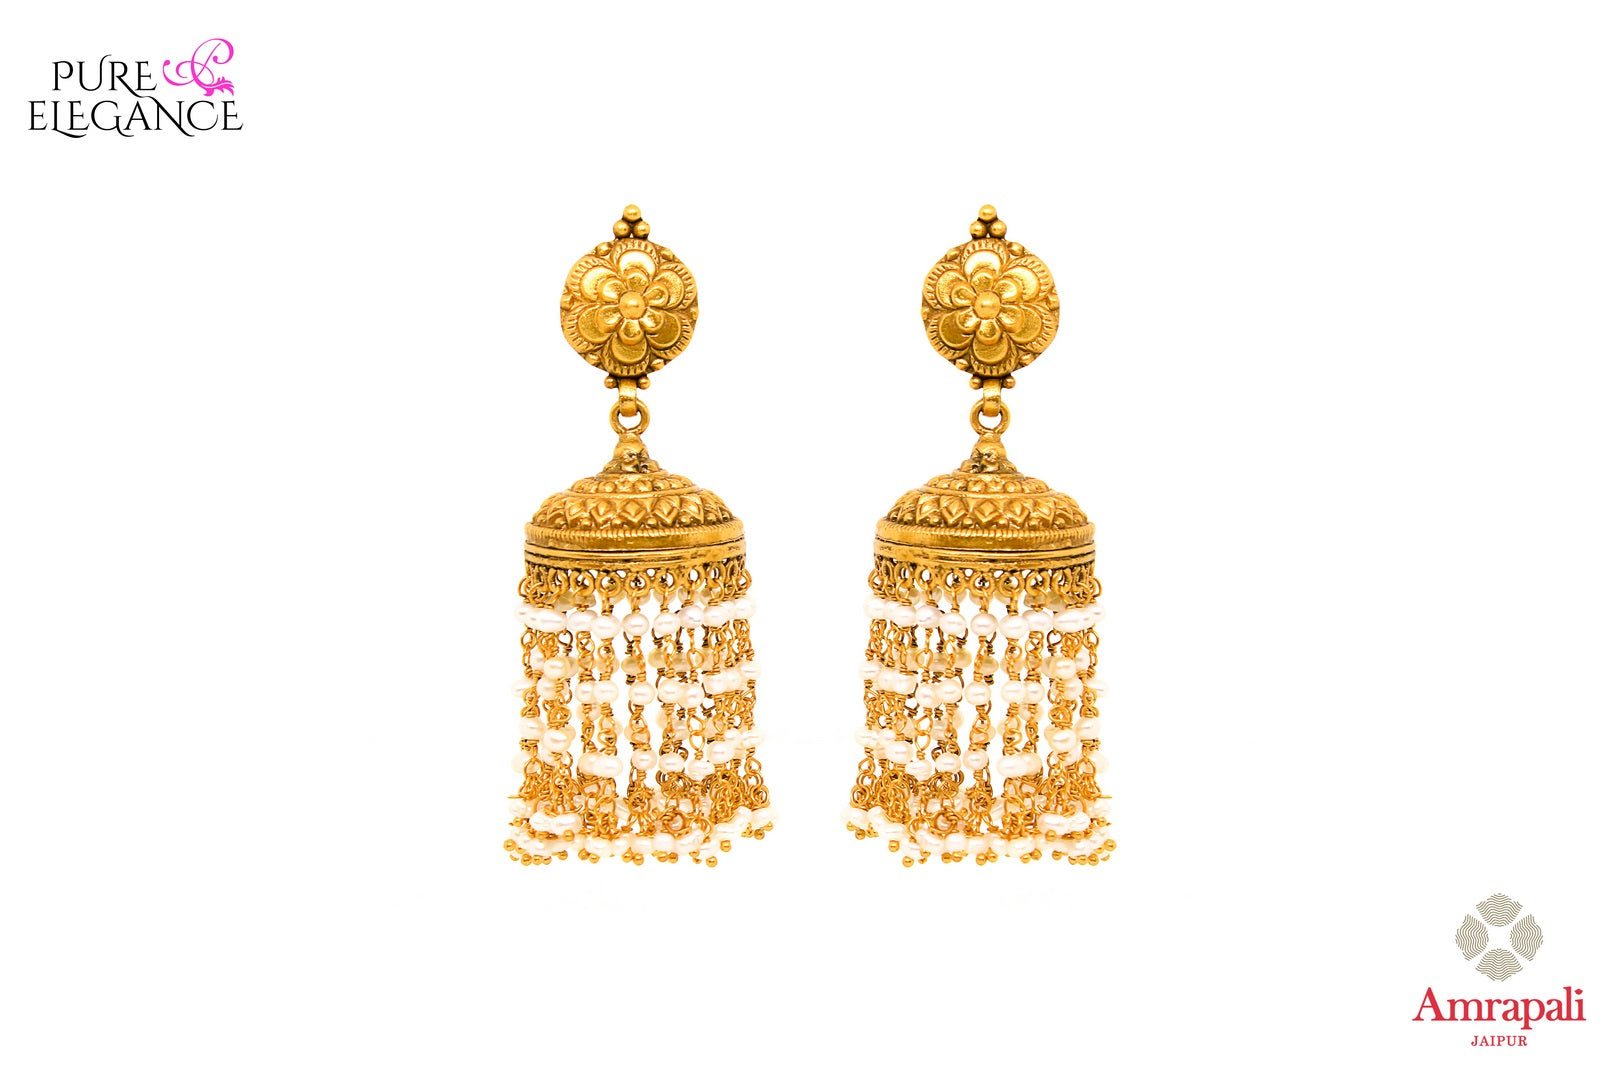 Buy ethnic silver gold plated earrings online in USA with pearl tassels. Add a unique touch to your Indian look at special occasions with these stunning earrings. Shop more such exquisite Amrapali jewelry in USA at Pure Elegance, you can visit our exclusive fashion store in USA or shop online.-front look